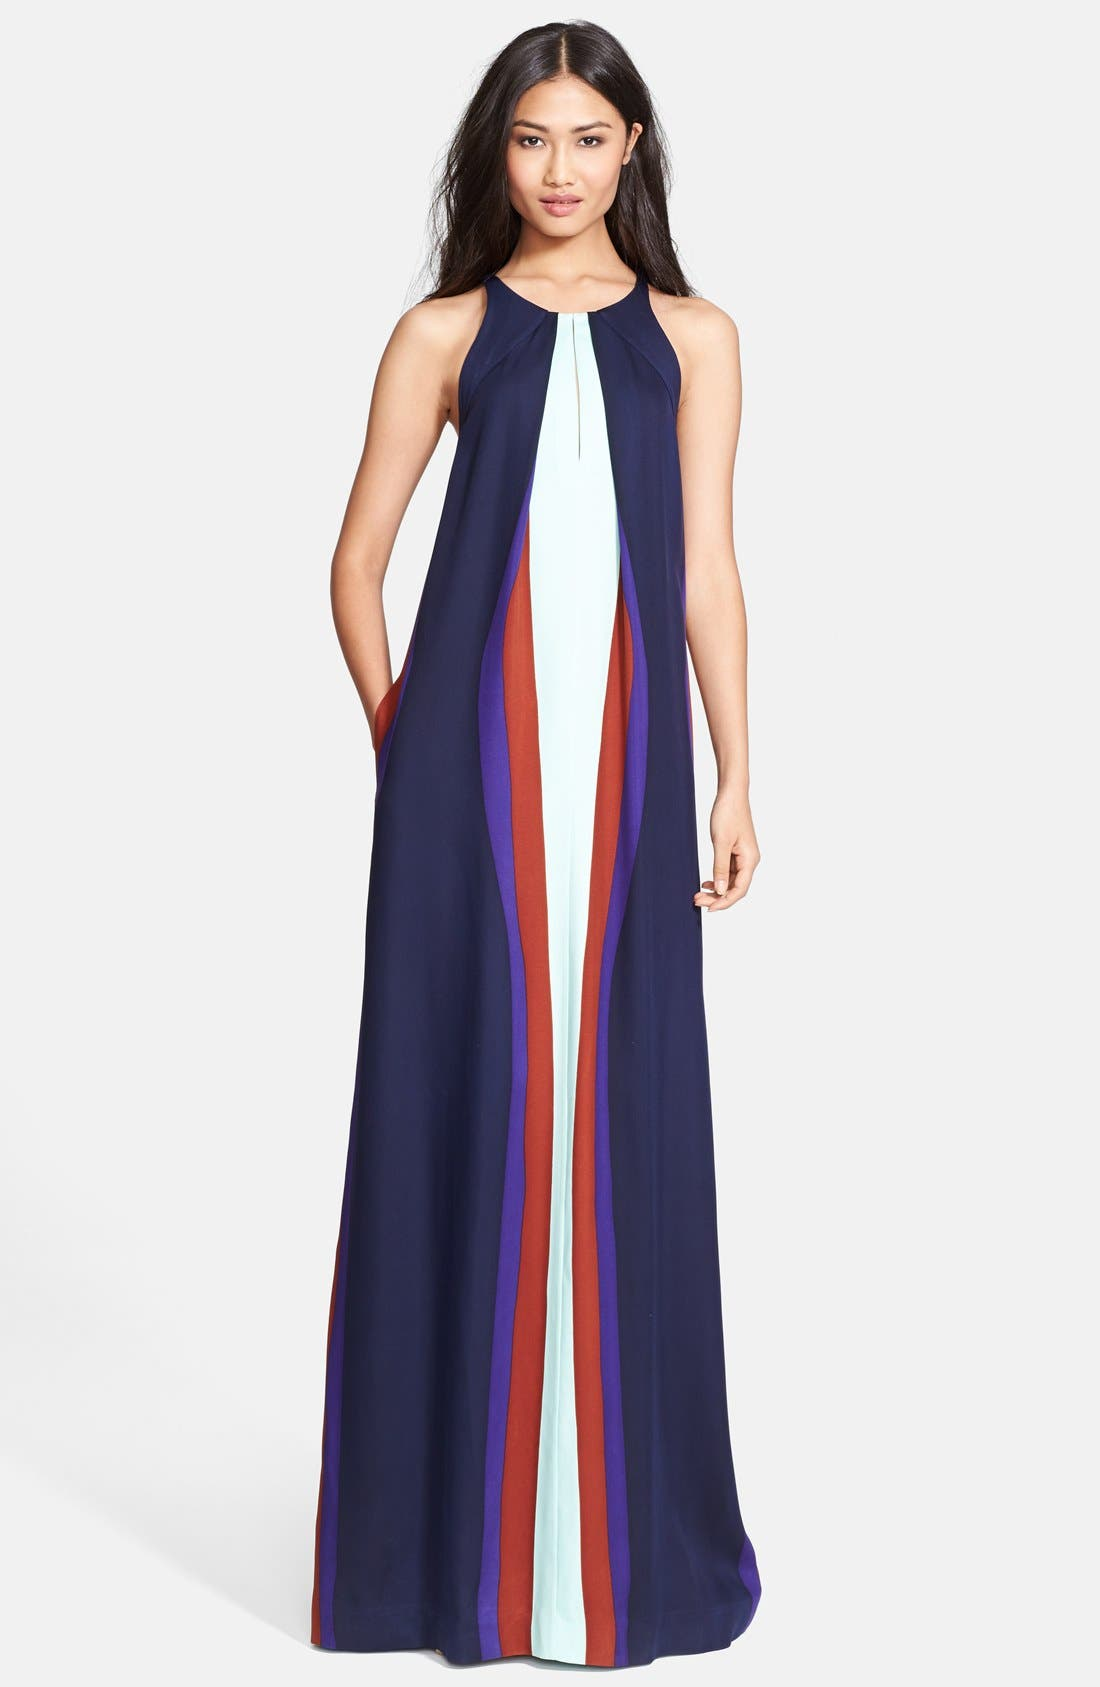 Main Image - Diane von Furstenberg 'Jordan' Print Stretch Silk Maxi Dress